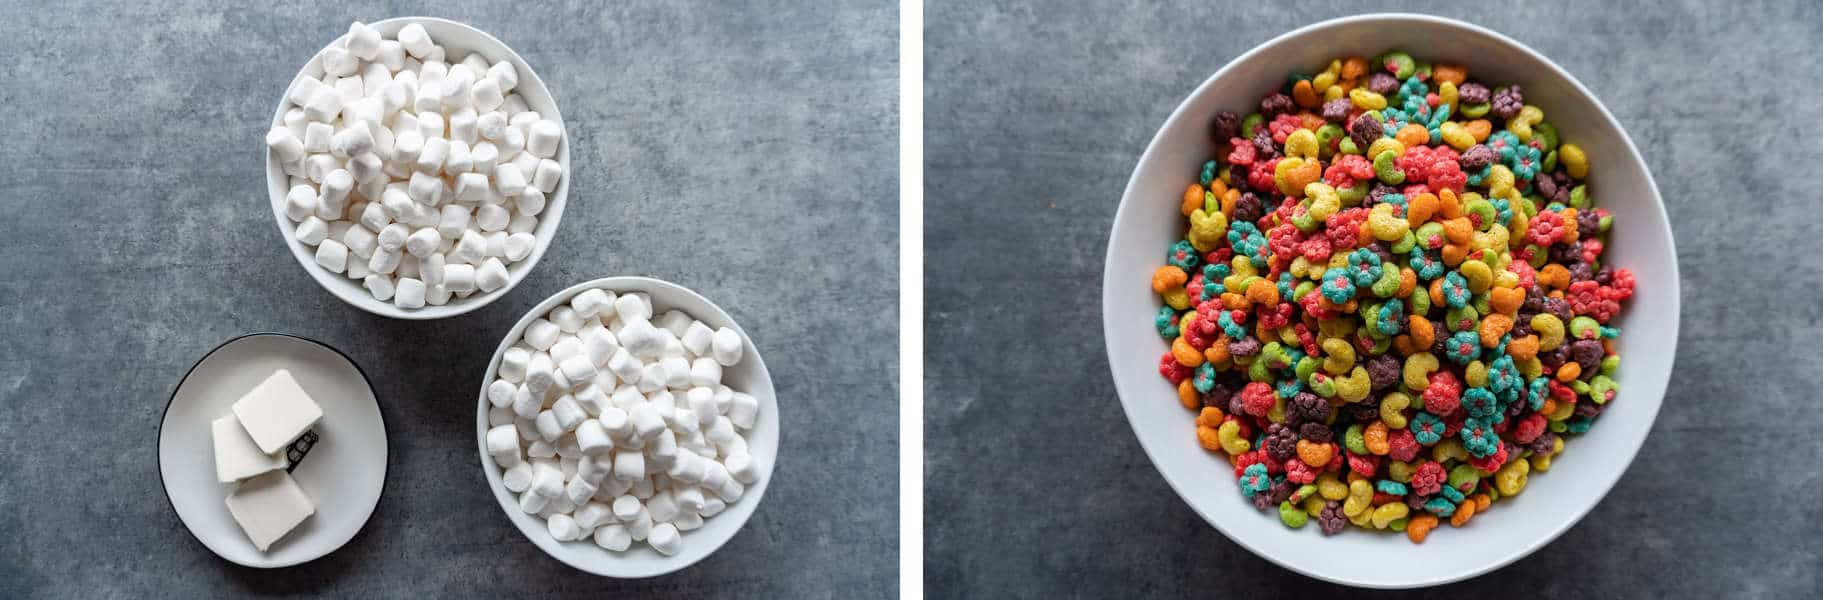 Ingredients- marshmallows, butter, trix cereal